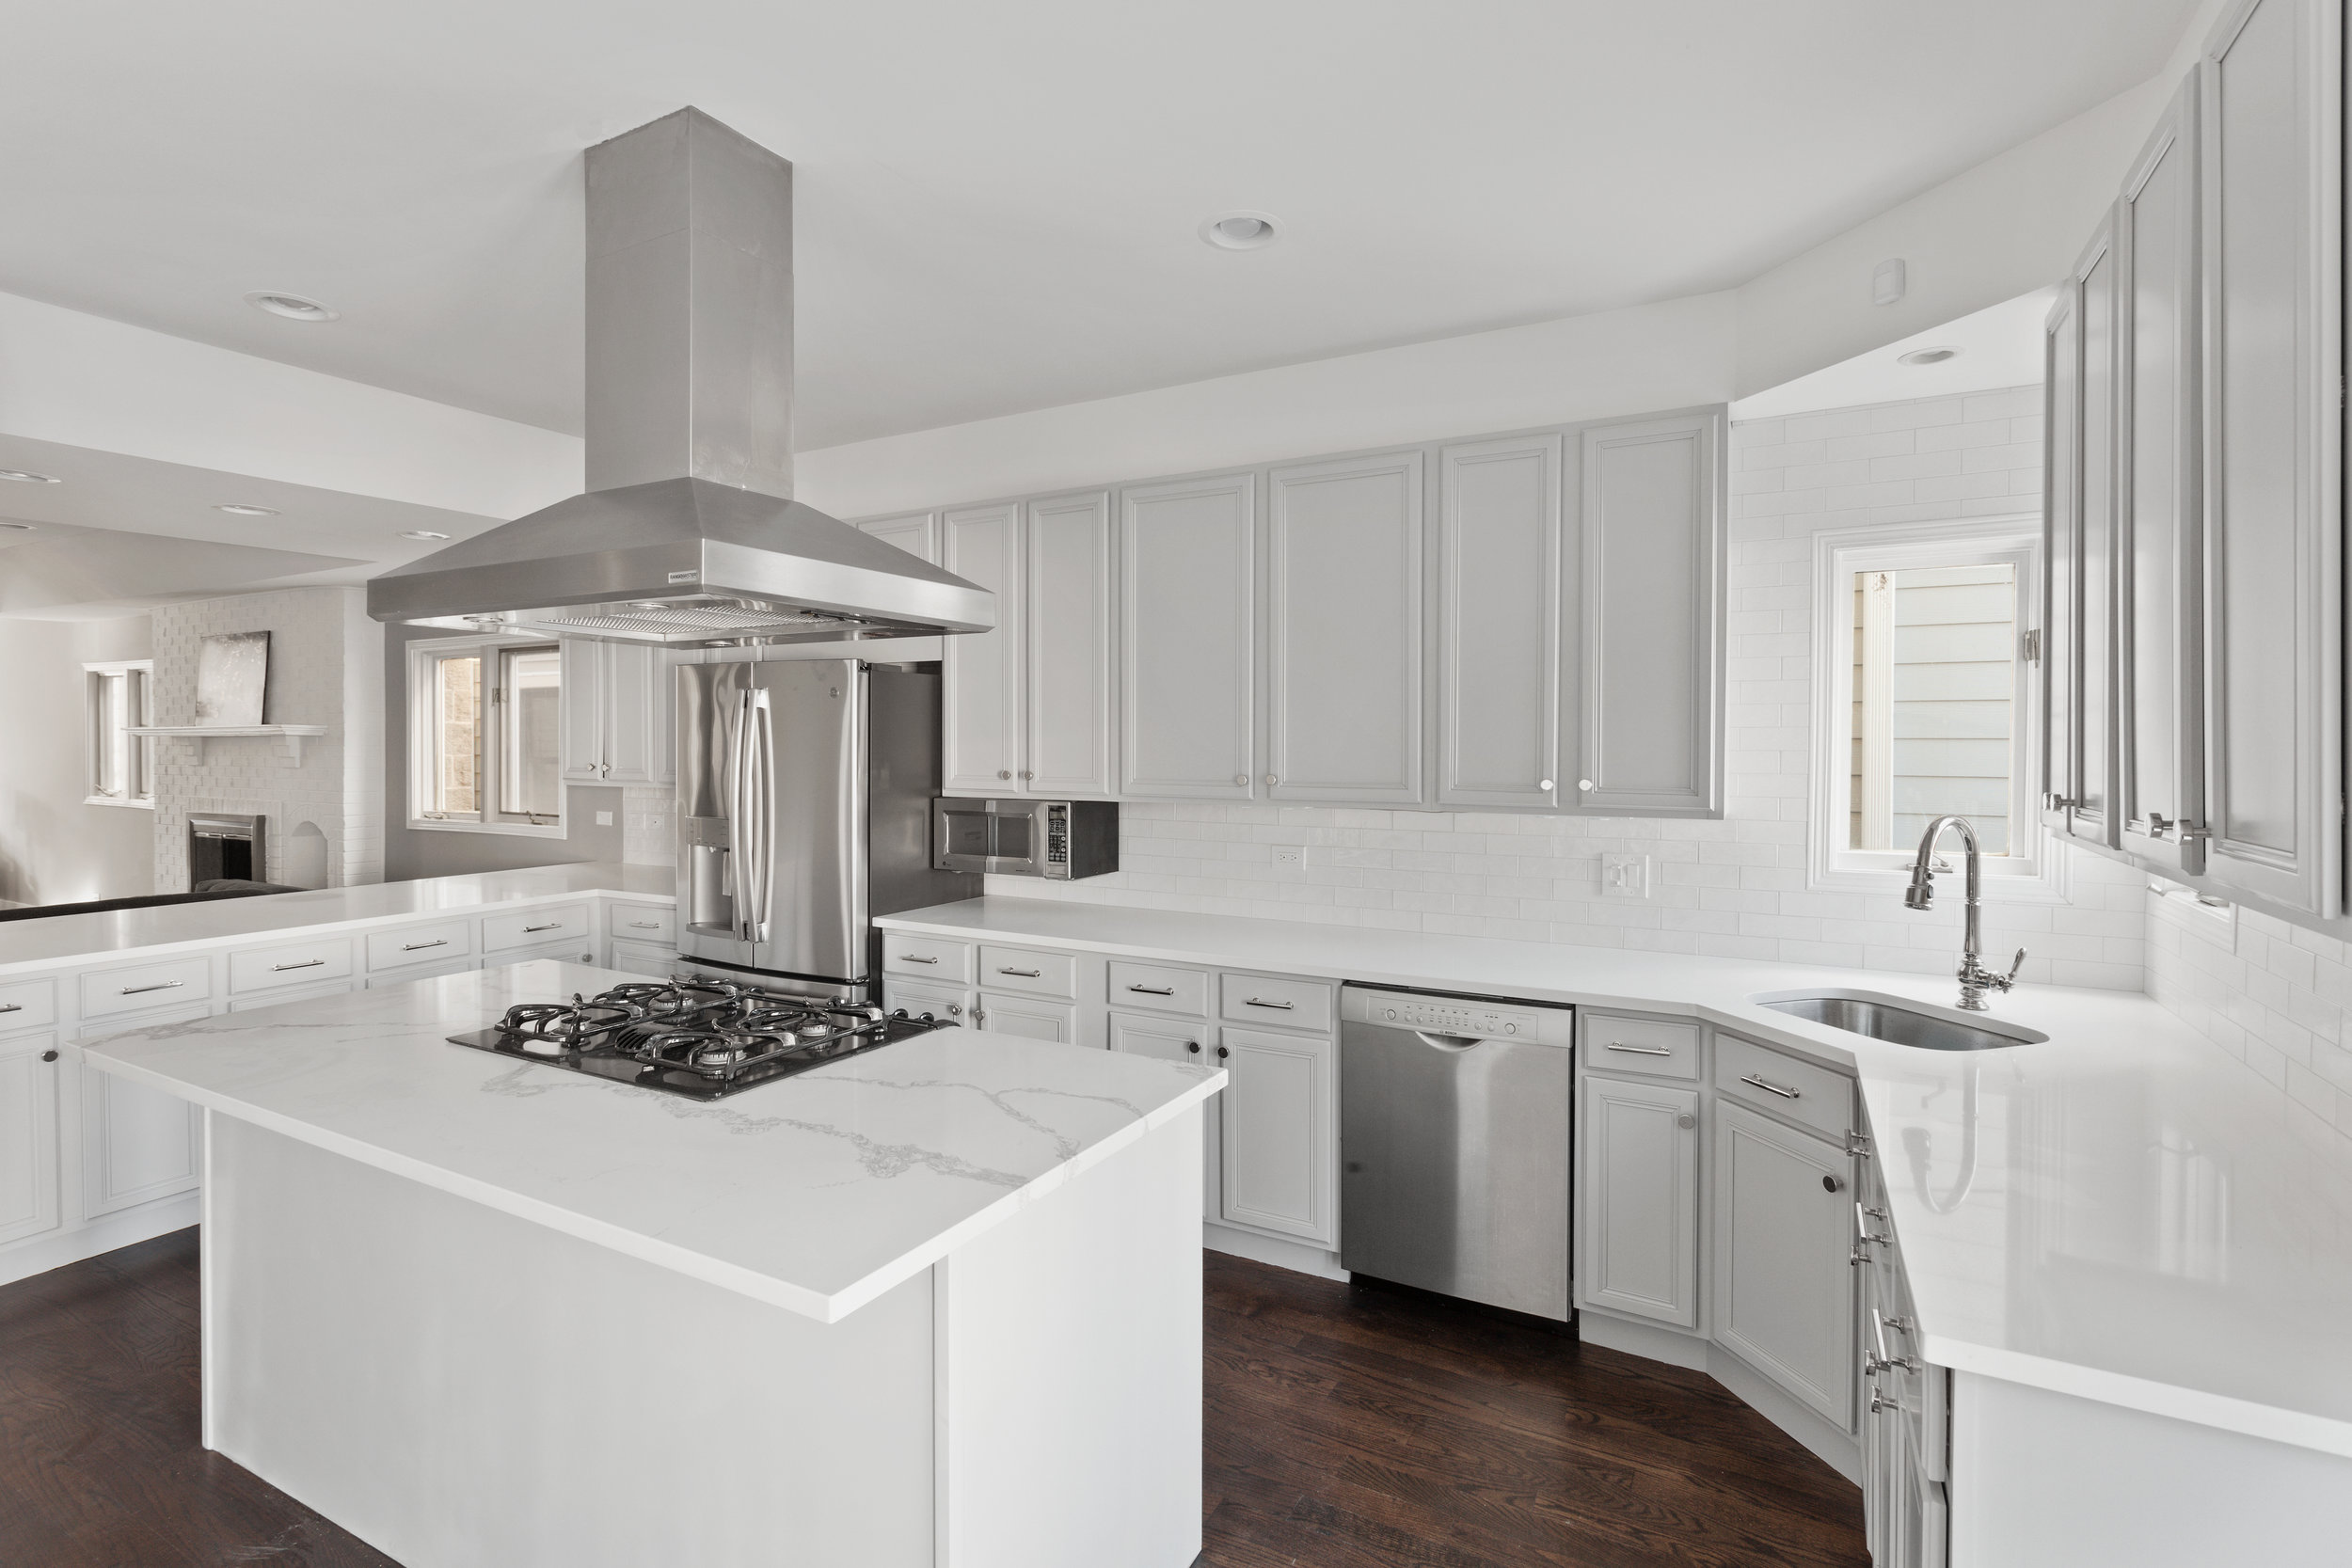 Lincoln Park Single-Family - Construction Cost: $39,000Construction Time: 4 weeksList Price: $1,149,900Market Time: 28 days